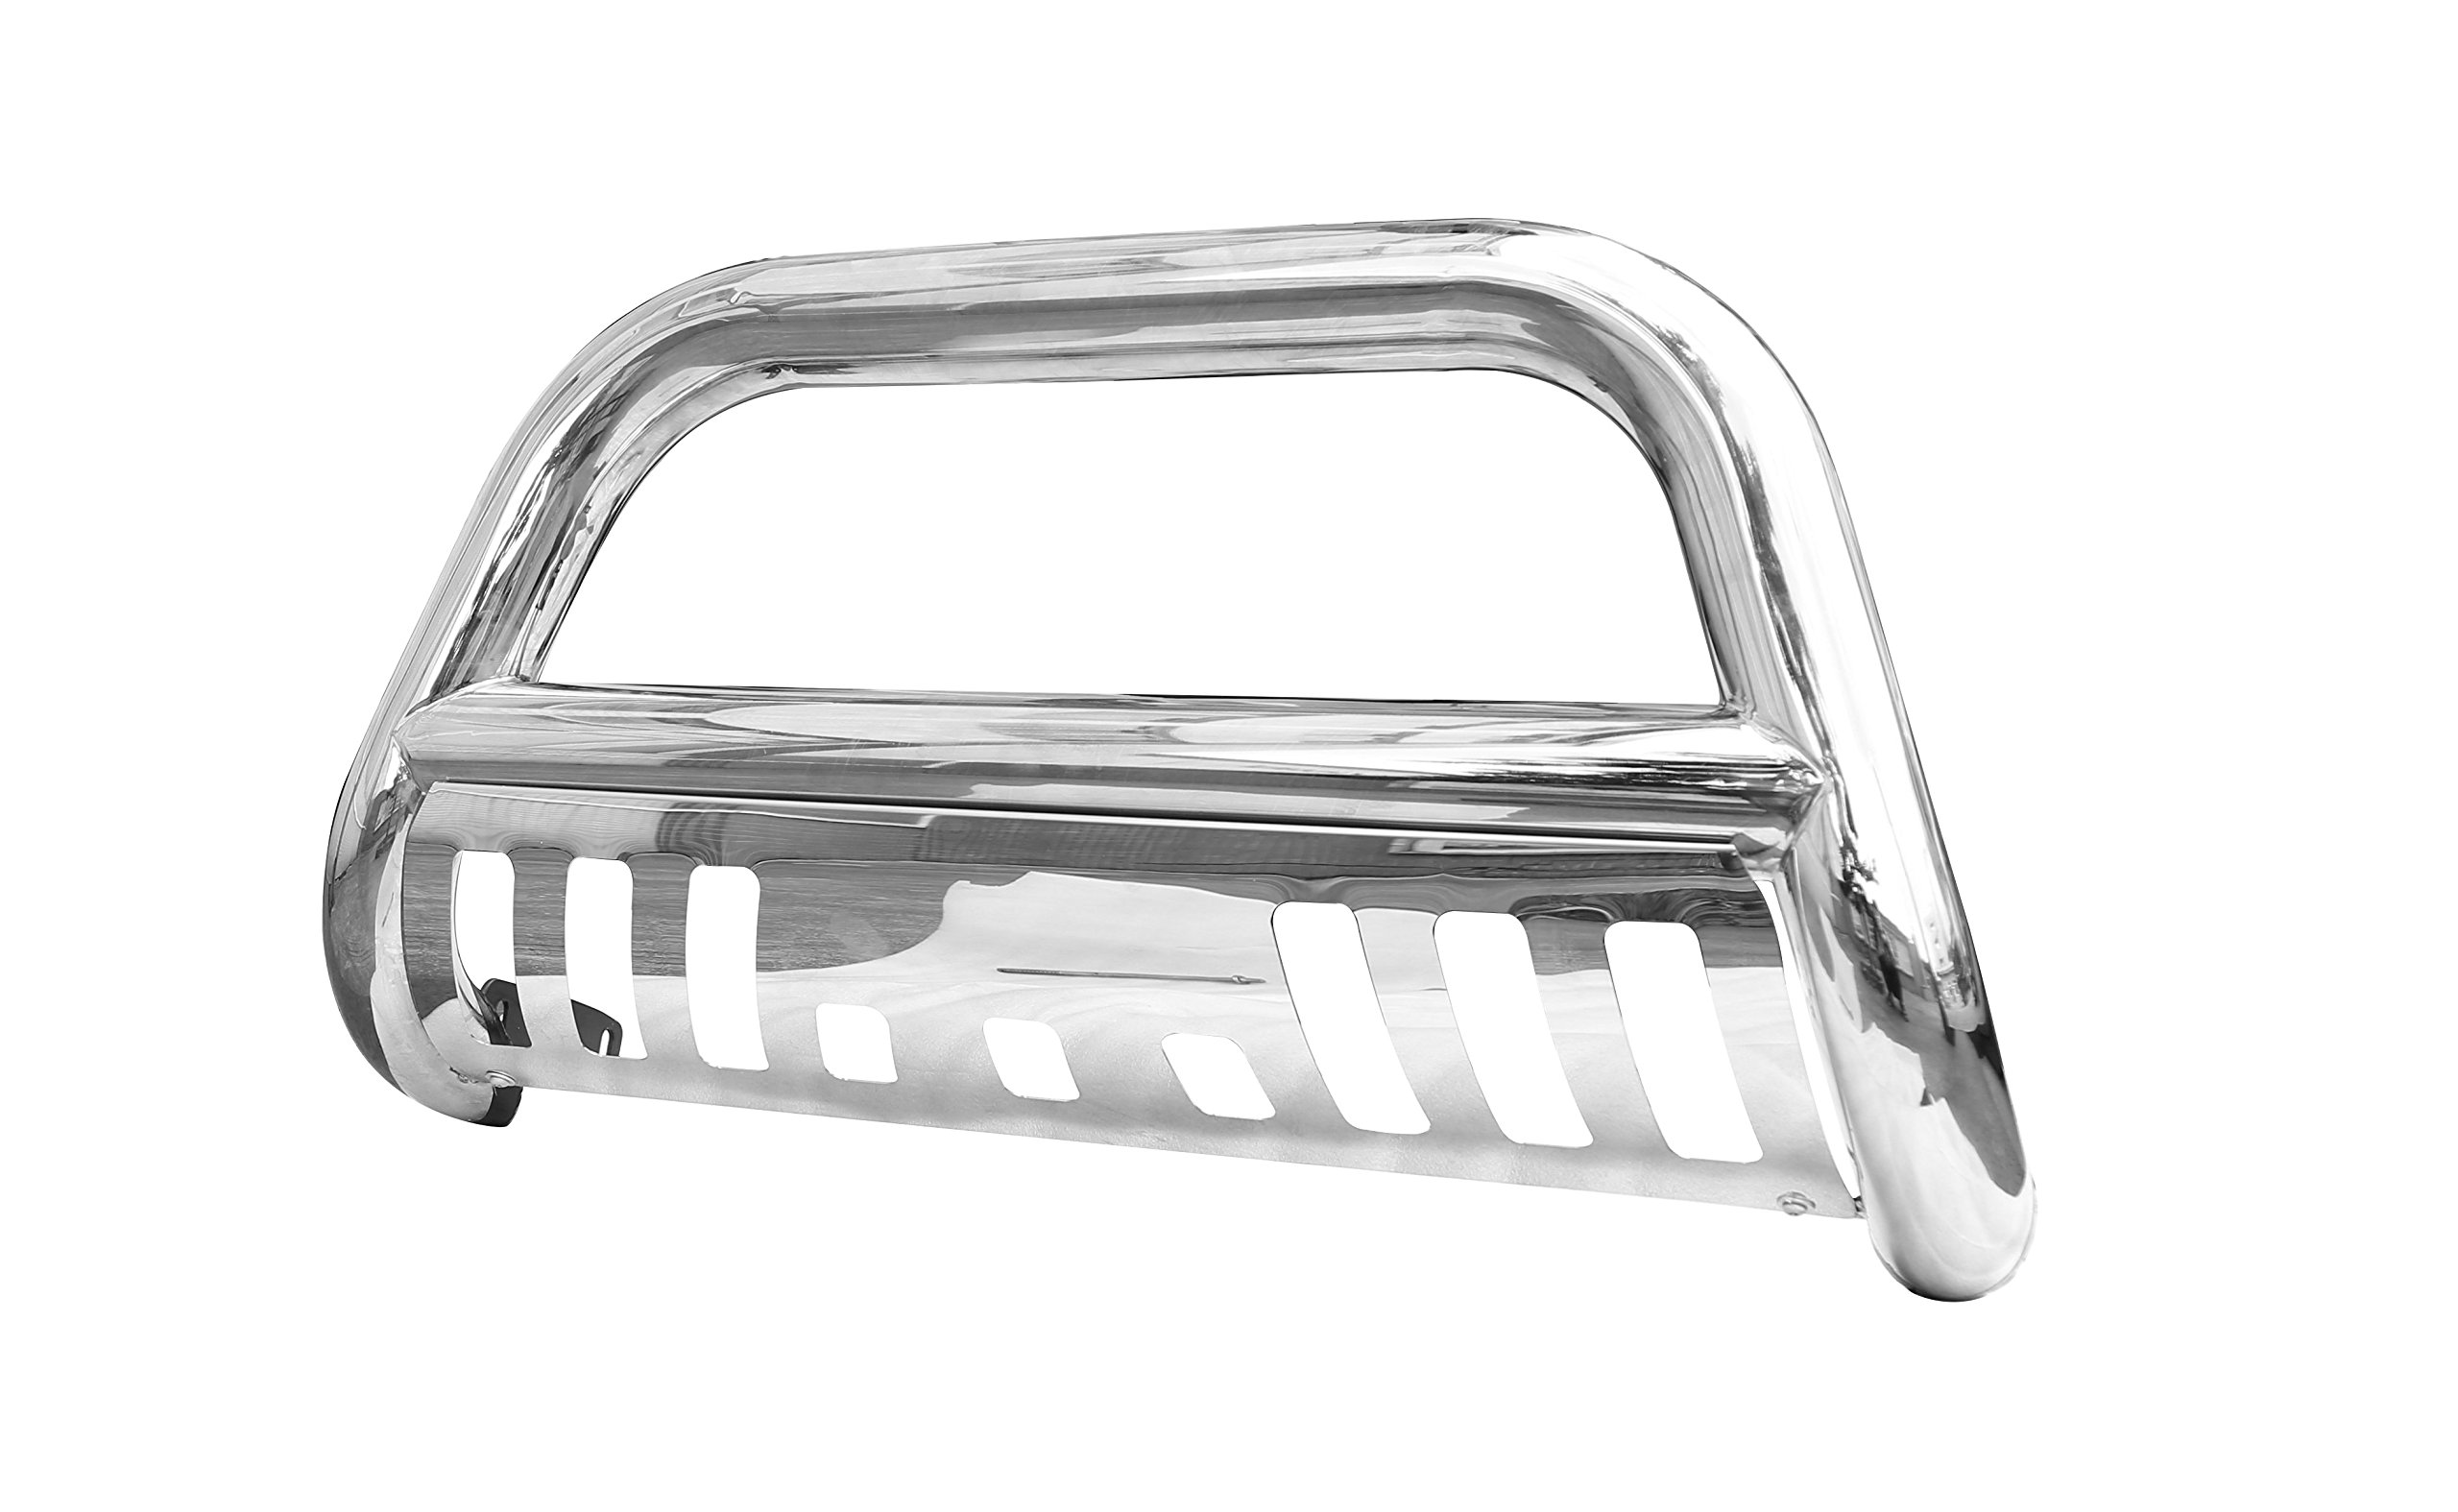 CAREPAIR Bull Bar Skid Plate Front Push Bumper Grille Guard Stainless Steel Chrome for 2011-2016 Ford F250/F350/F450/F550 Super Duty Pickup